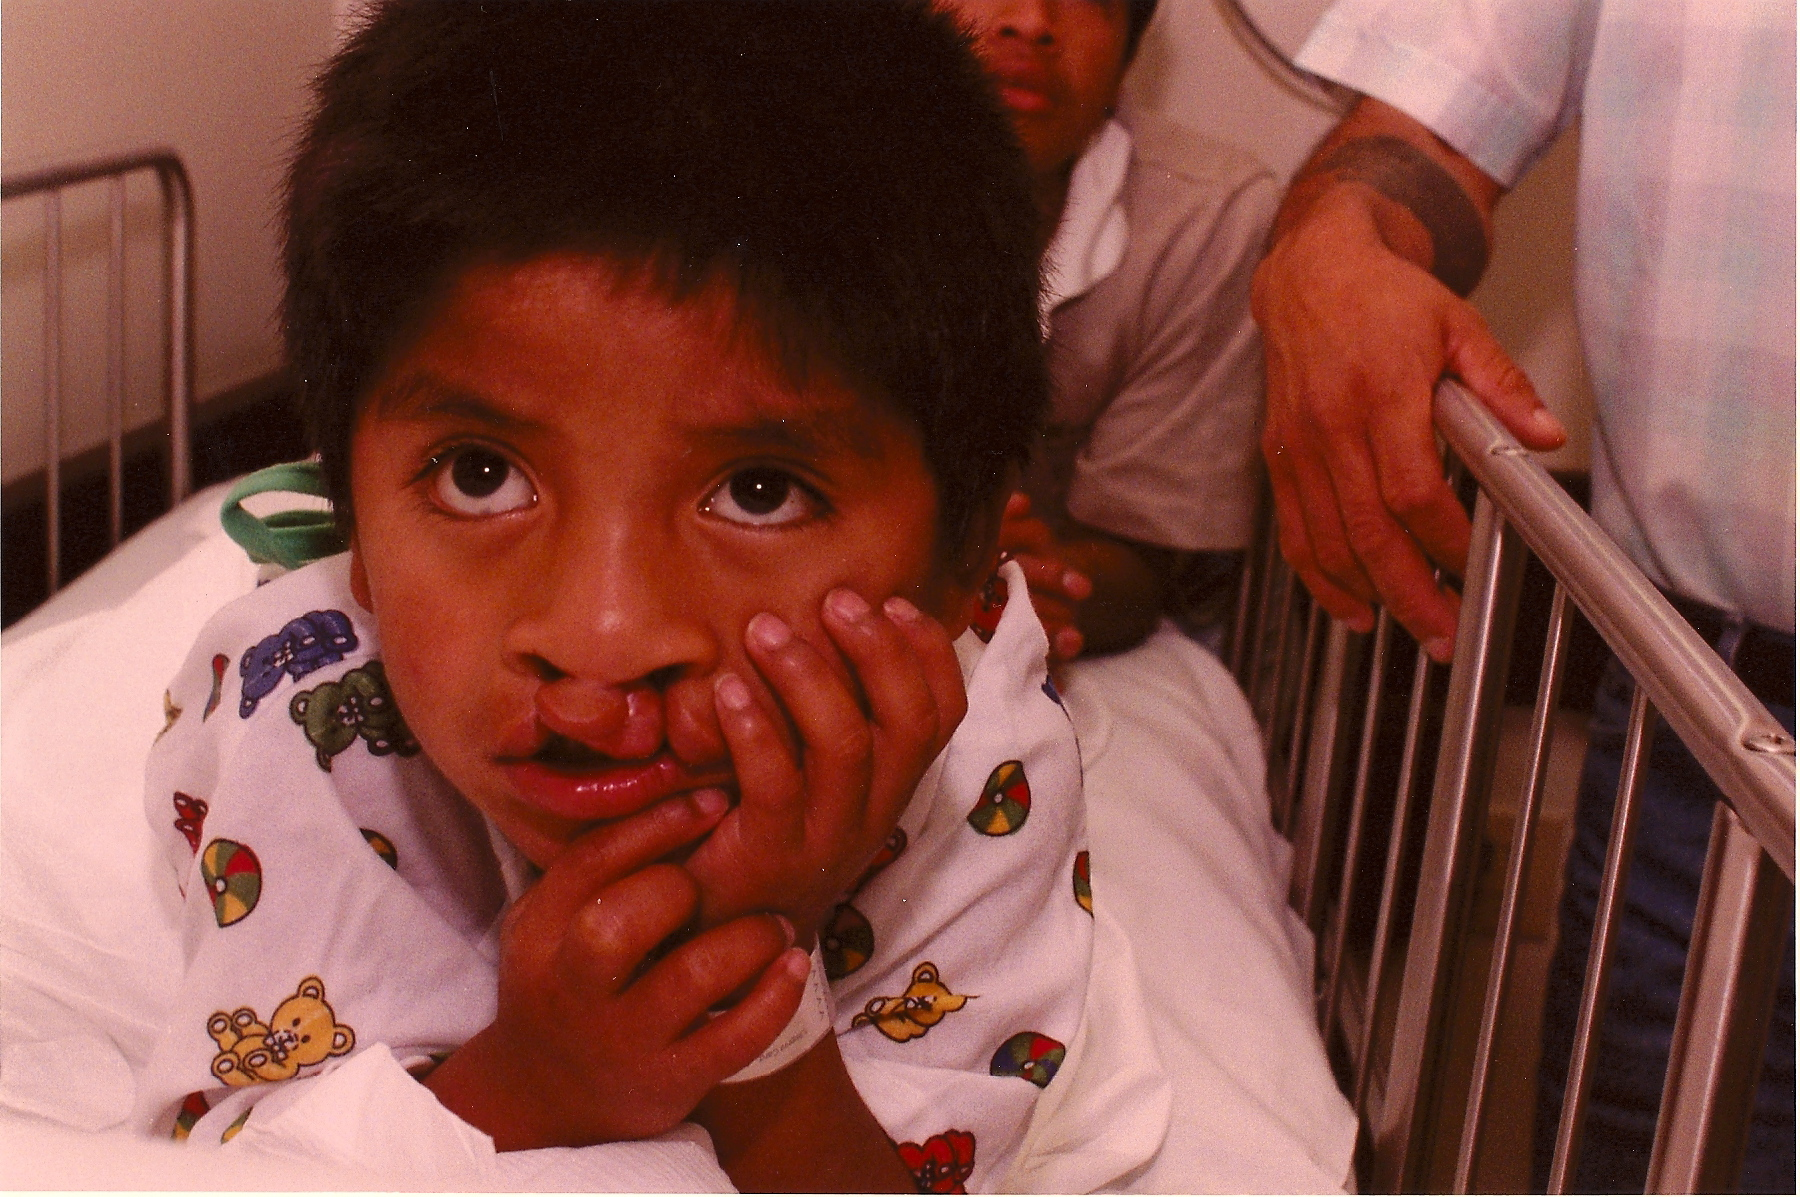 BEFORE: Young Nabor, born with a cleft palate.